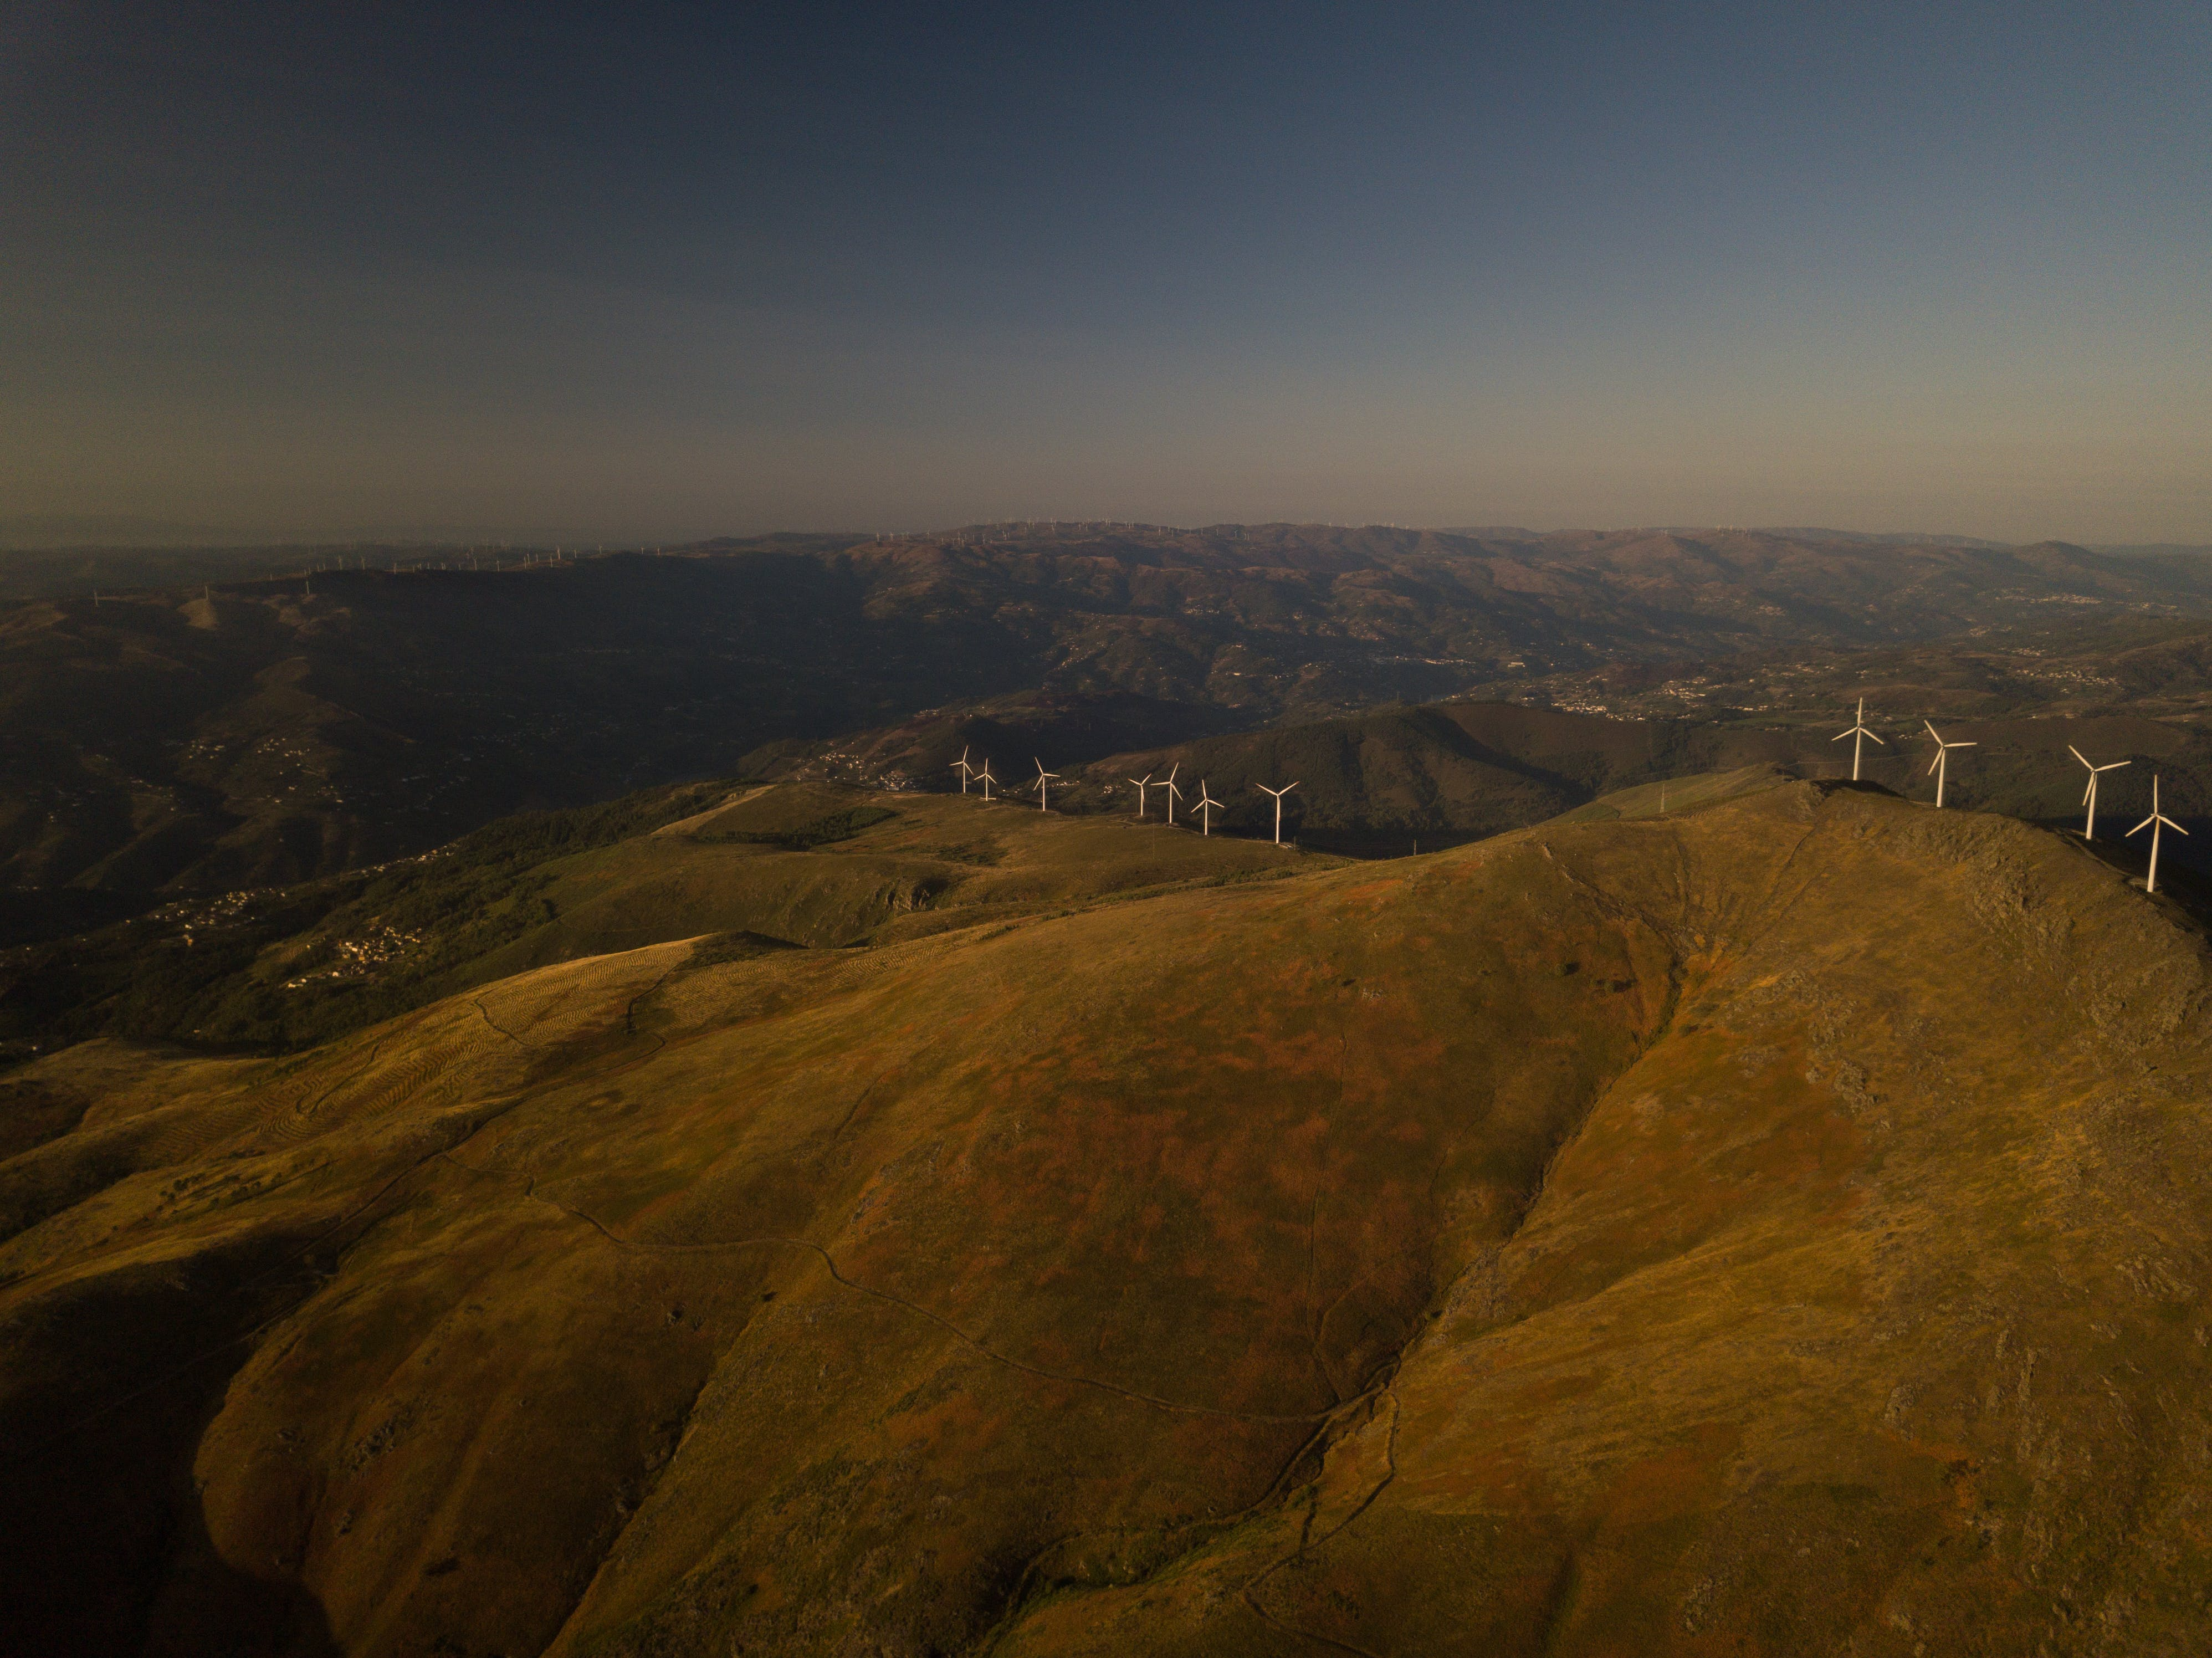 Aerial View of White Turbines on Green Grass Hills